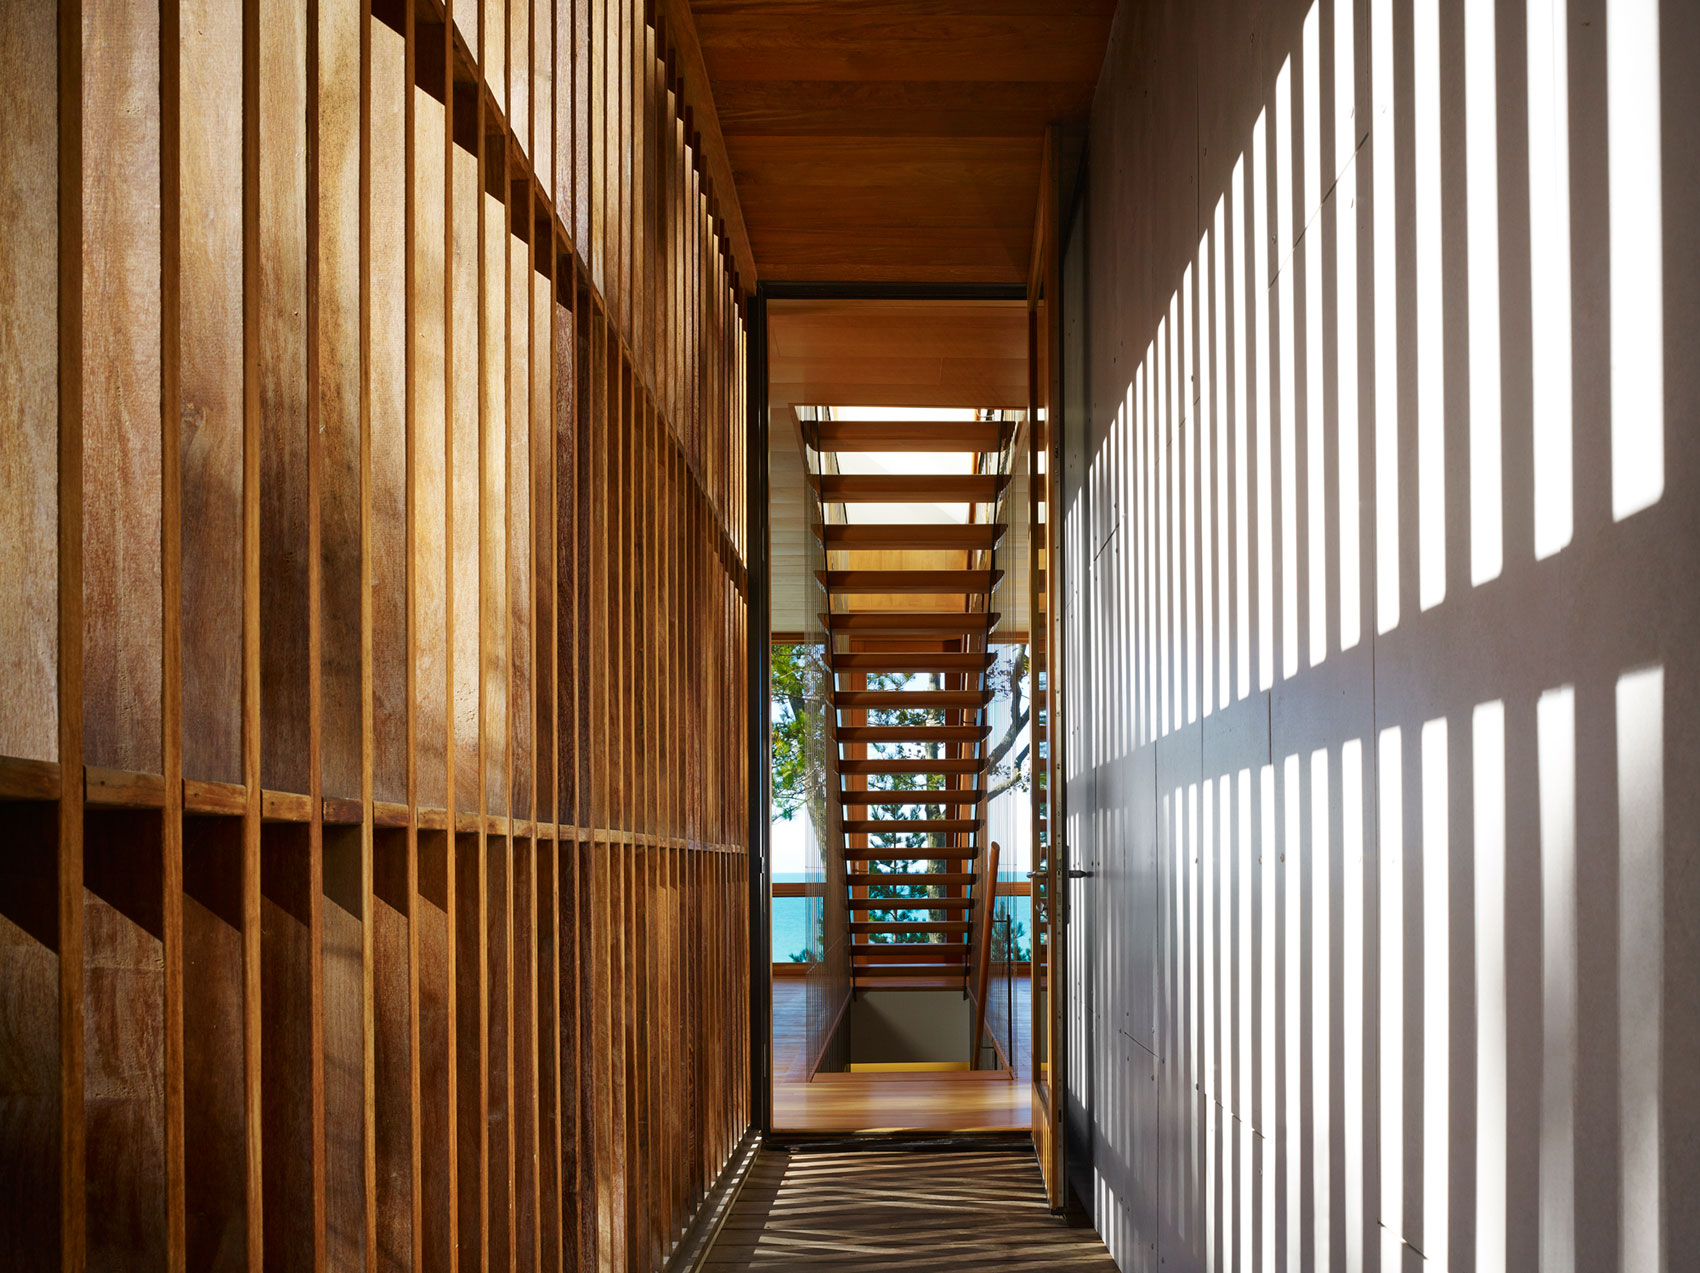 Tranquility and Simplicity Core Elements of Suns End Retreat in Harbert Michigan by Wheeler Kearns Architects-12